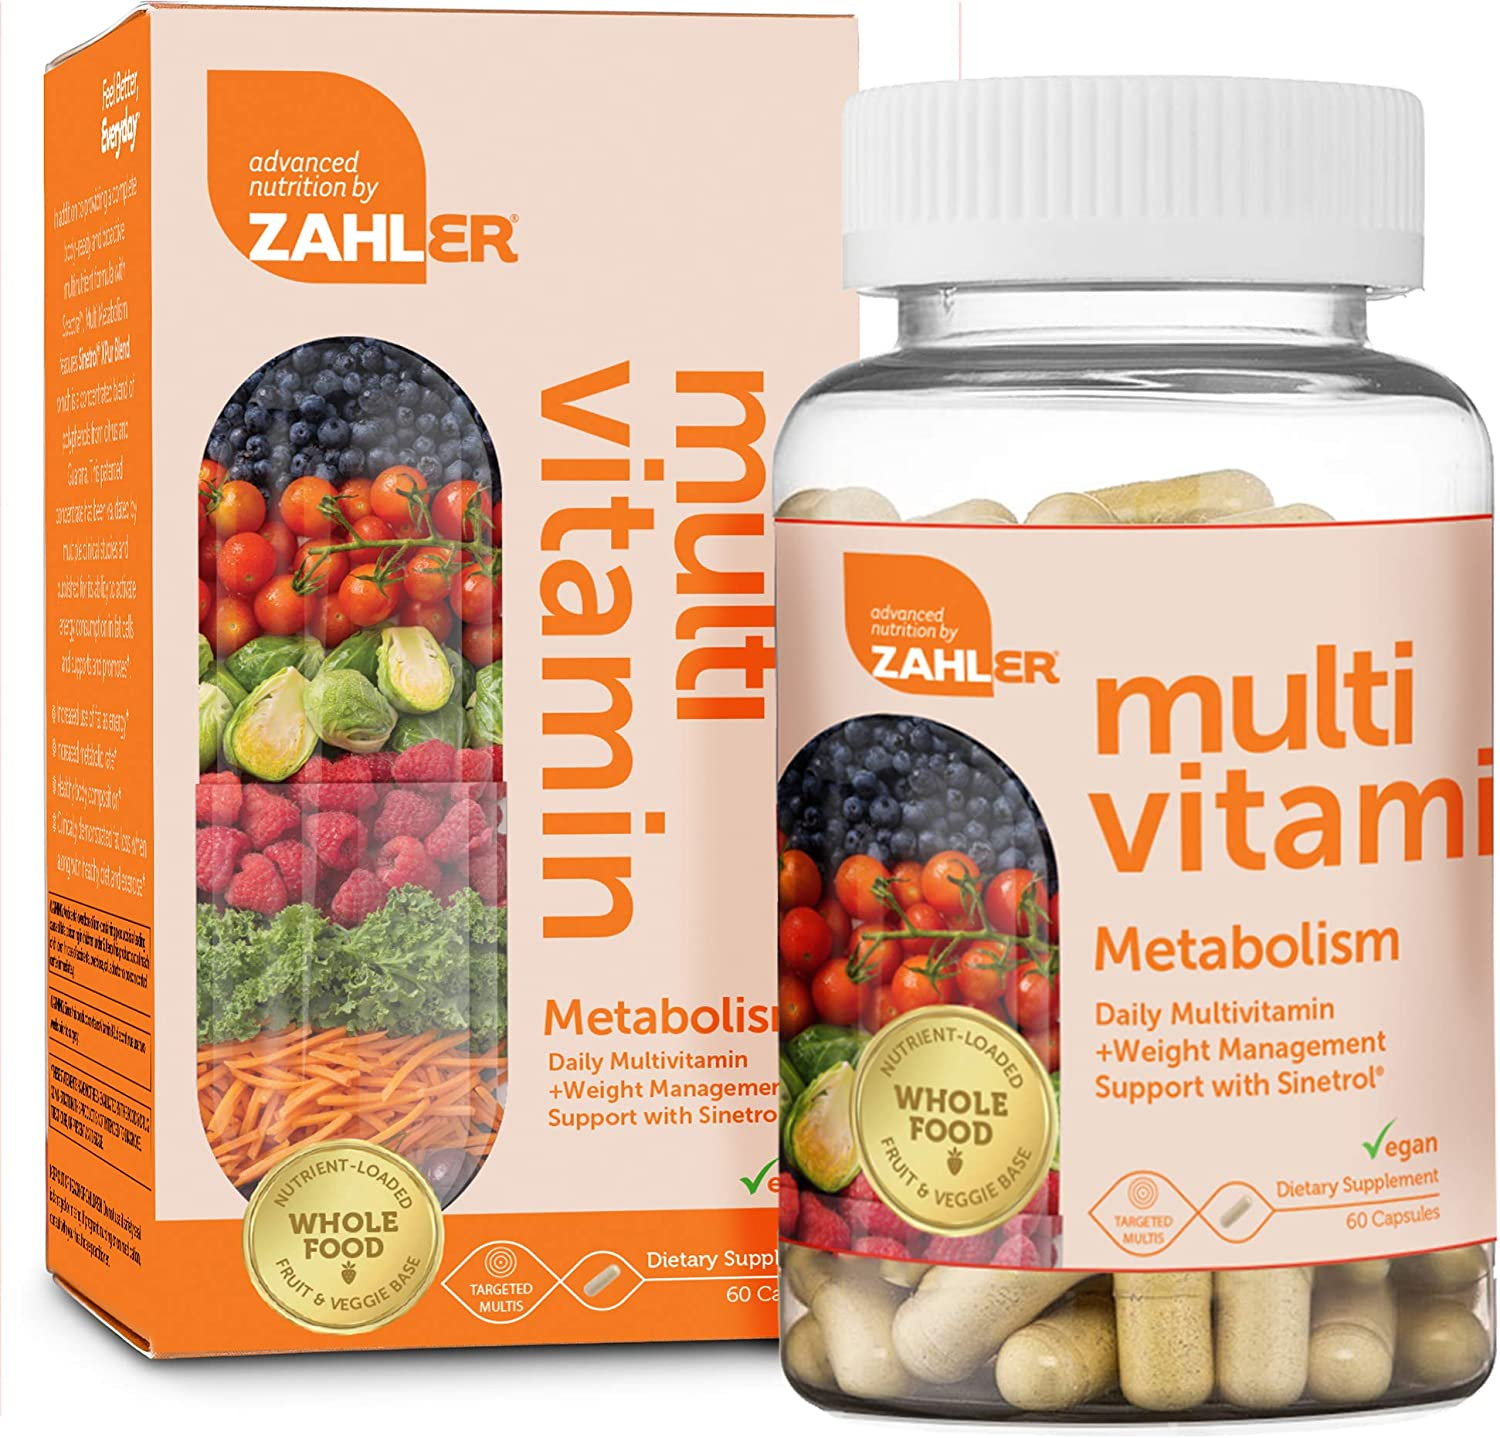 Zahler Multivitamin Metabolism, Daily Multivitamin +Weight Management Support, Multivitamin for Women and Men with Iron, Certified Kosher, 60 Capsules